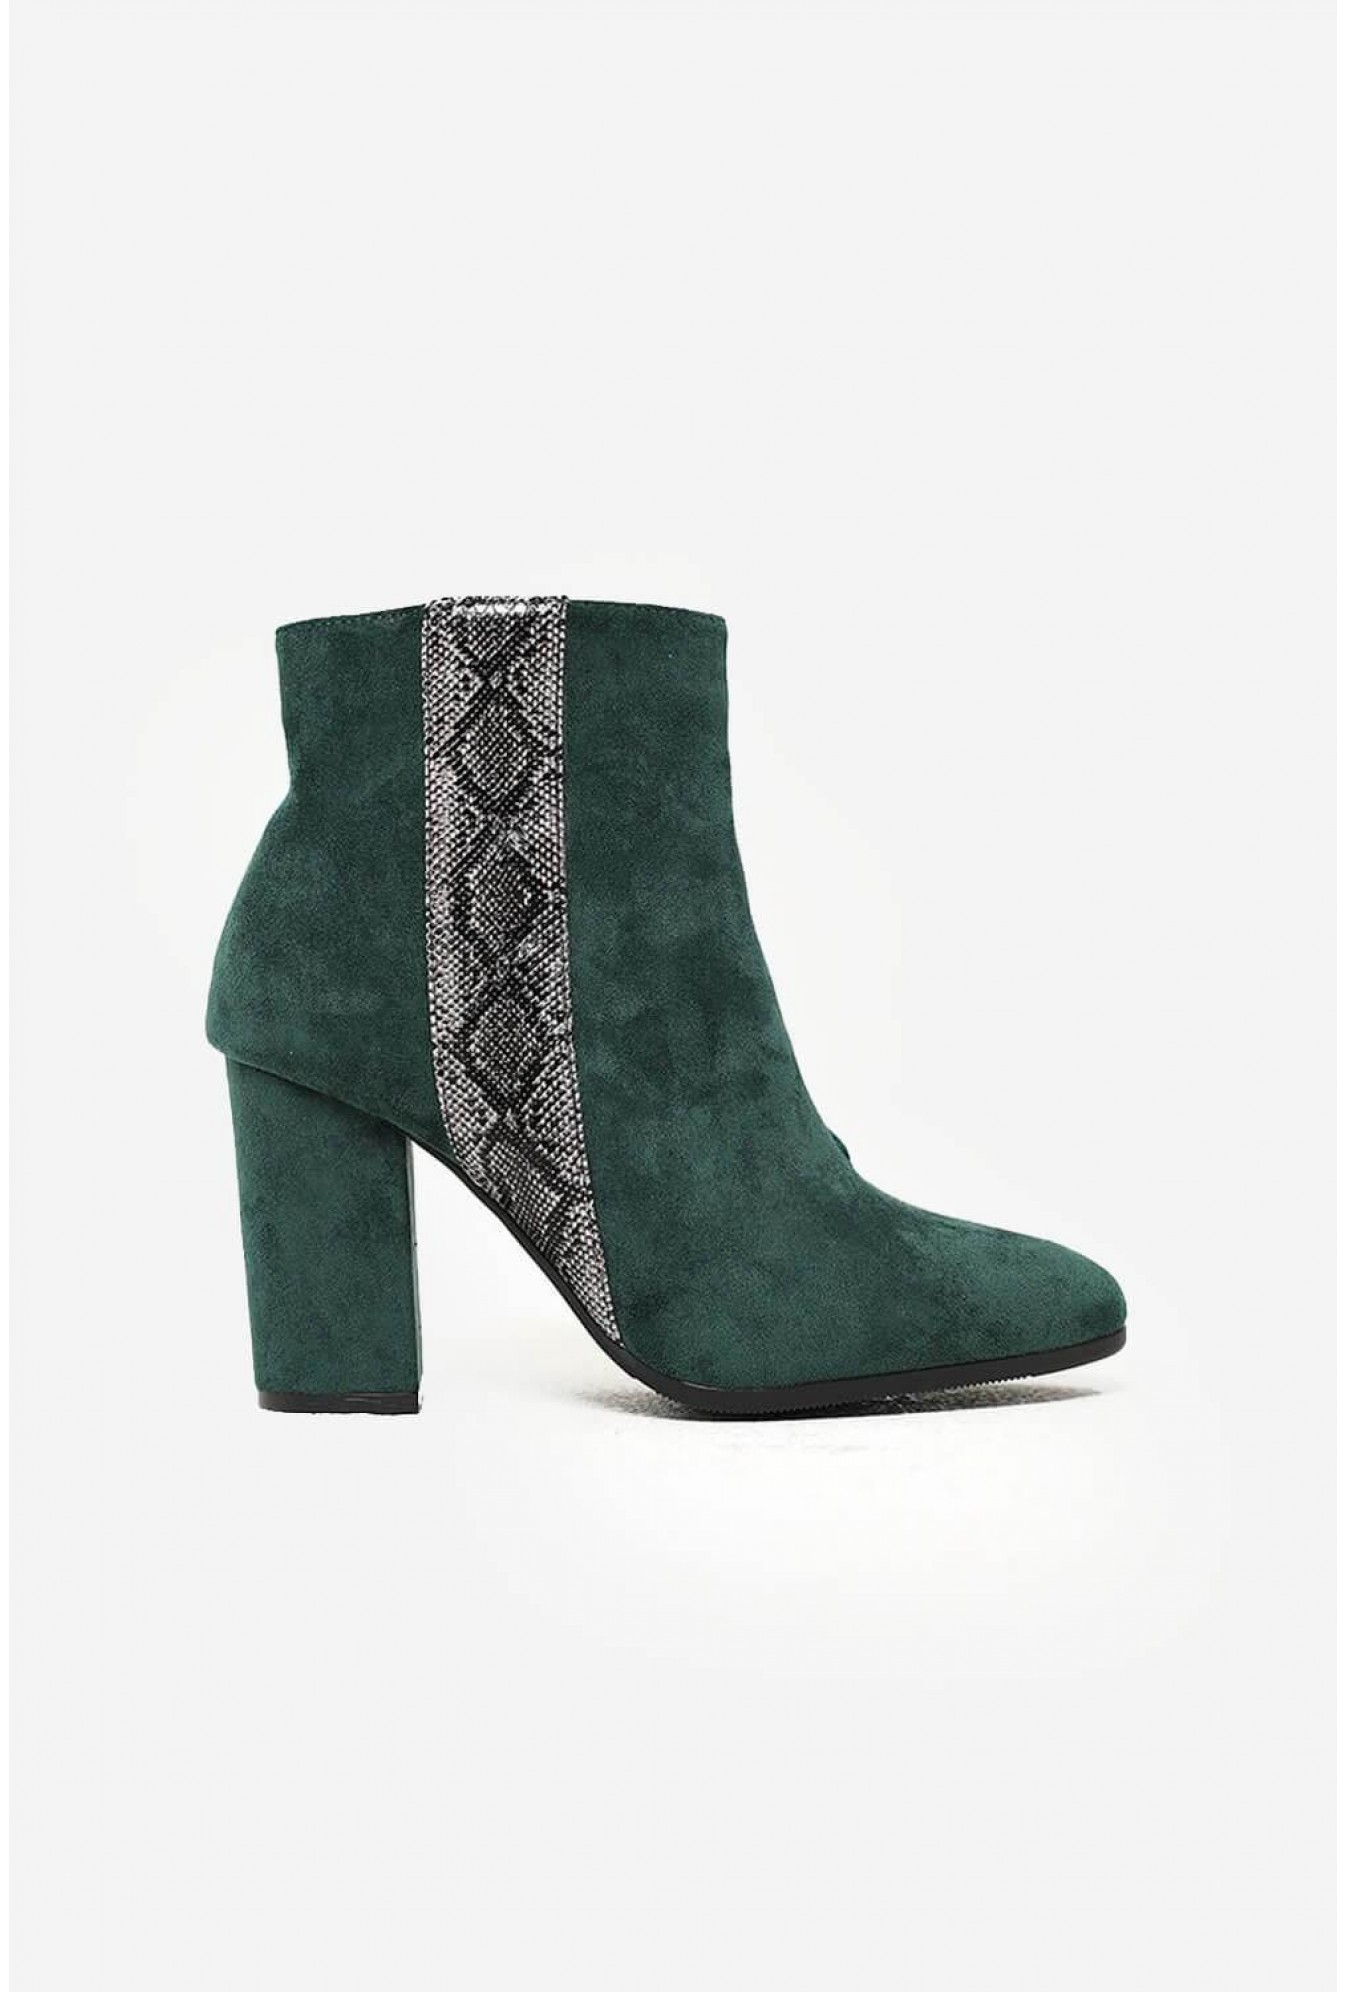 919563ebd03 Sarah Snake Trim Ankle Boot in Green Suede